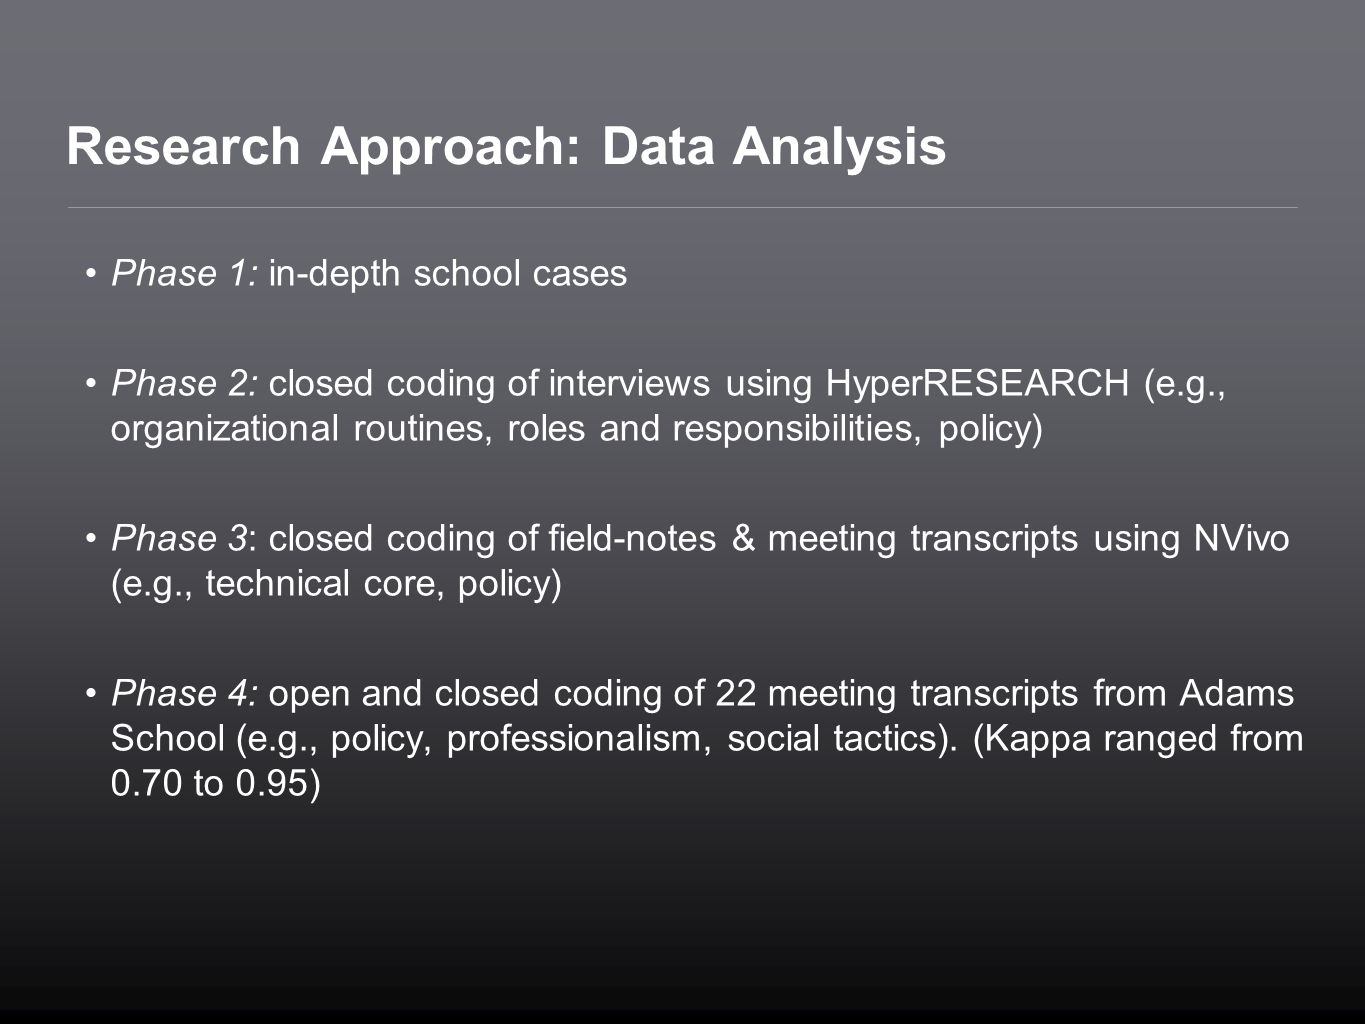 Research Approach: Data Analysis